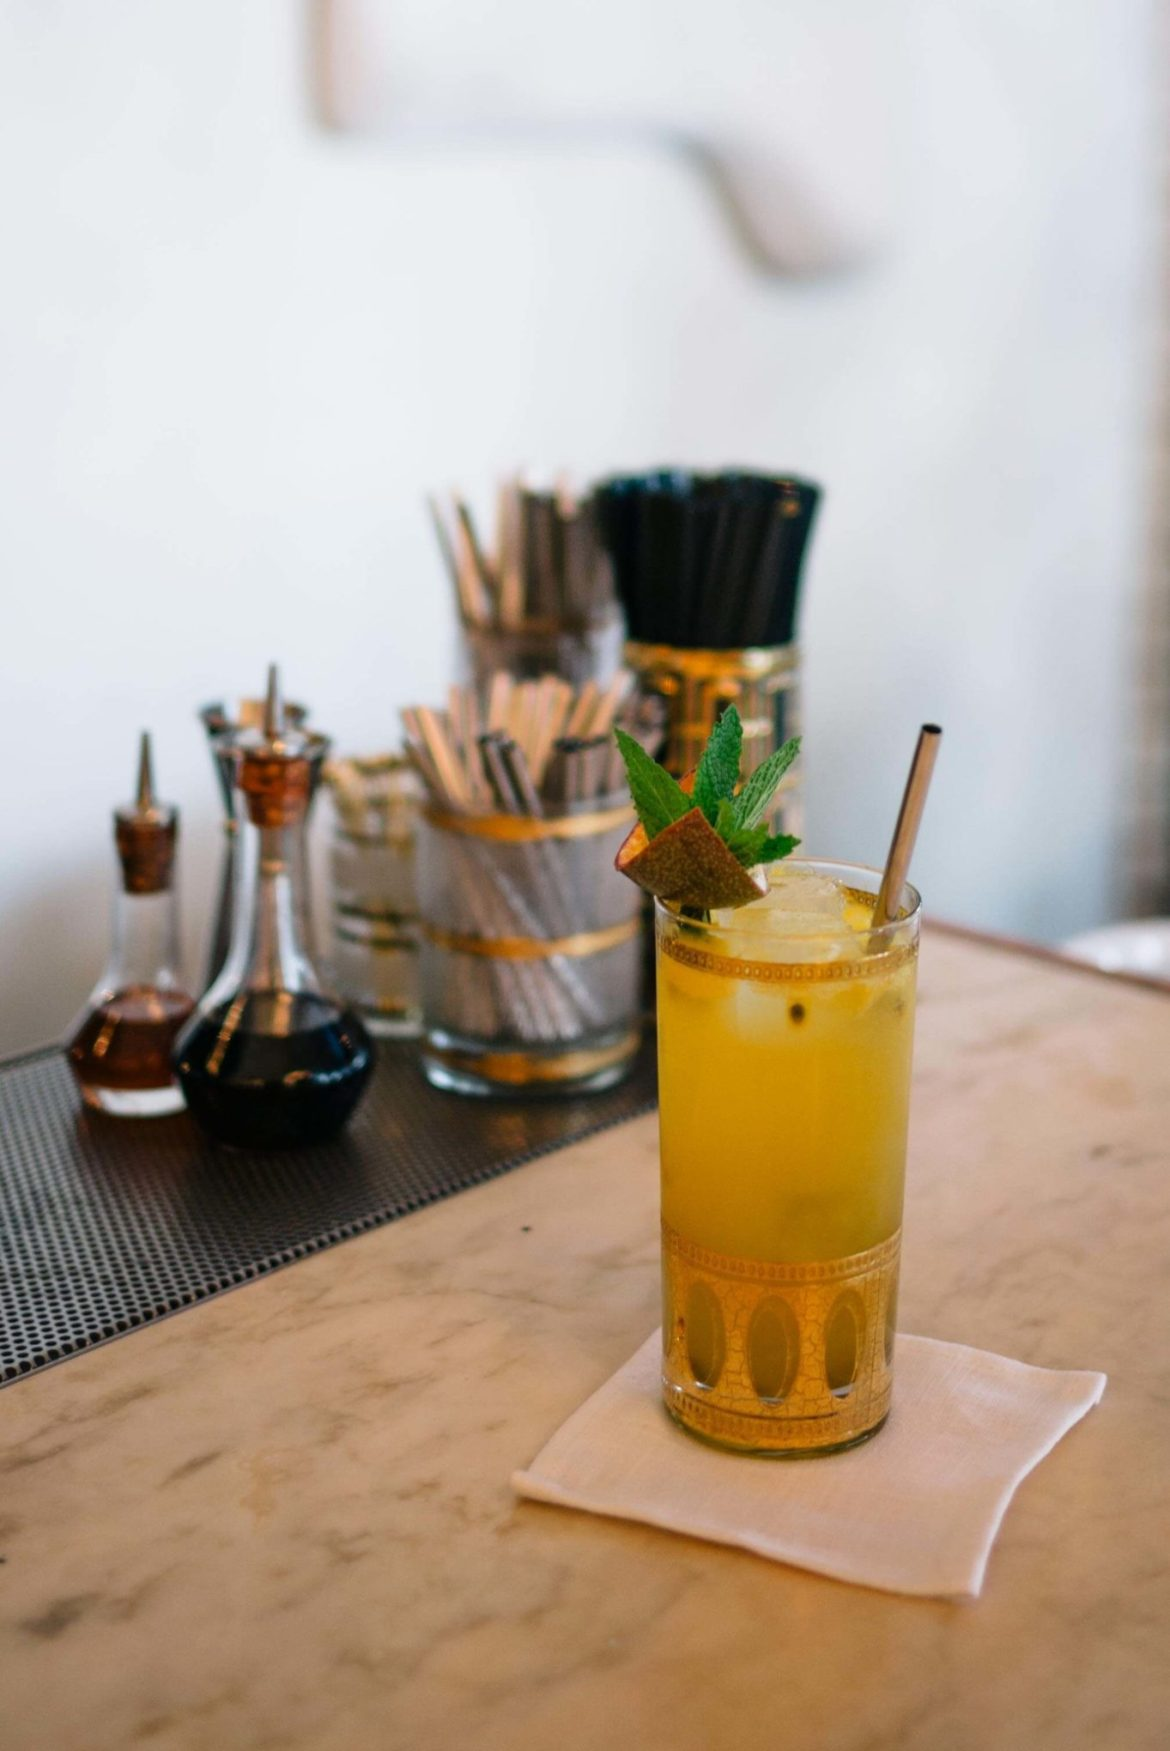 Order cocktails in Hollywood at the Bar at Gwenin Los Angeles, owned by Celebrity Chef Curtis Stone.